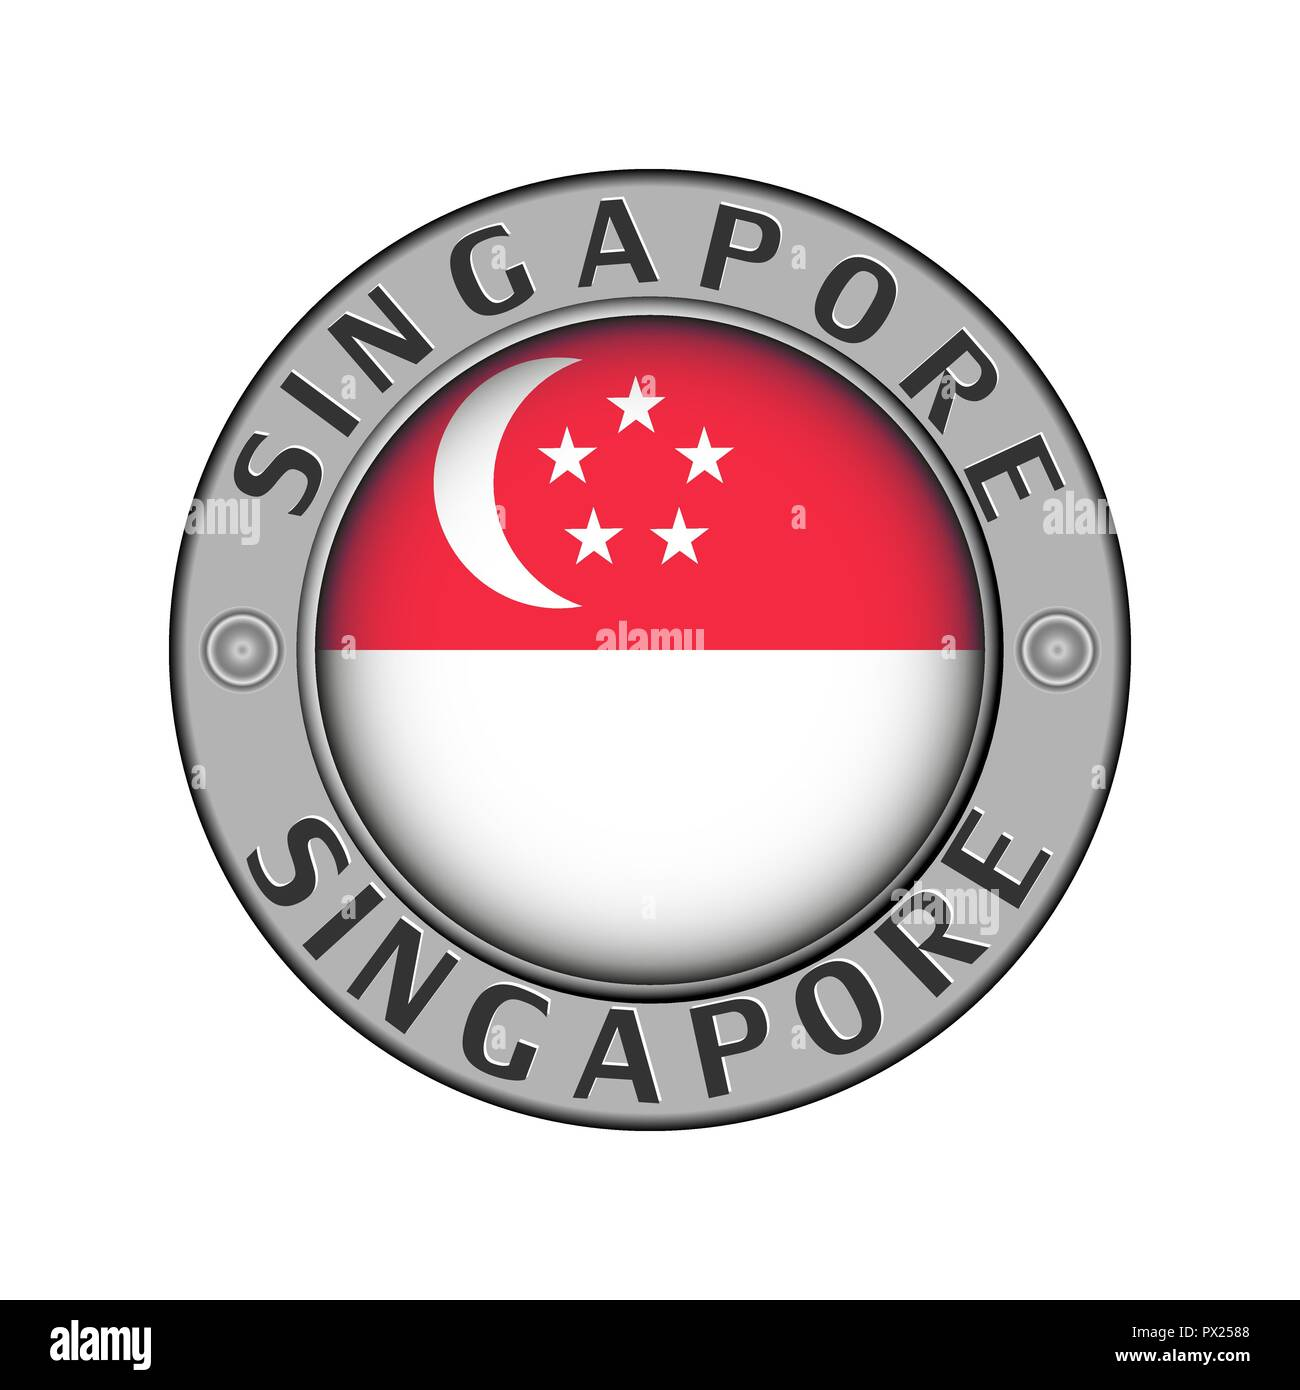 Image result for Singapore name